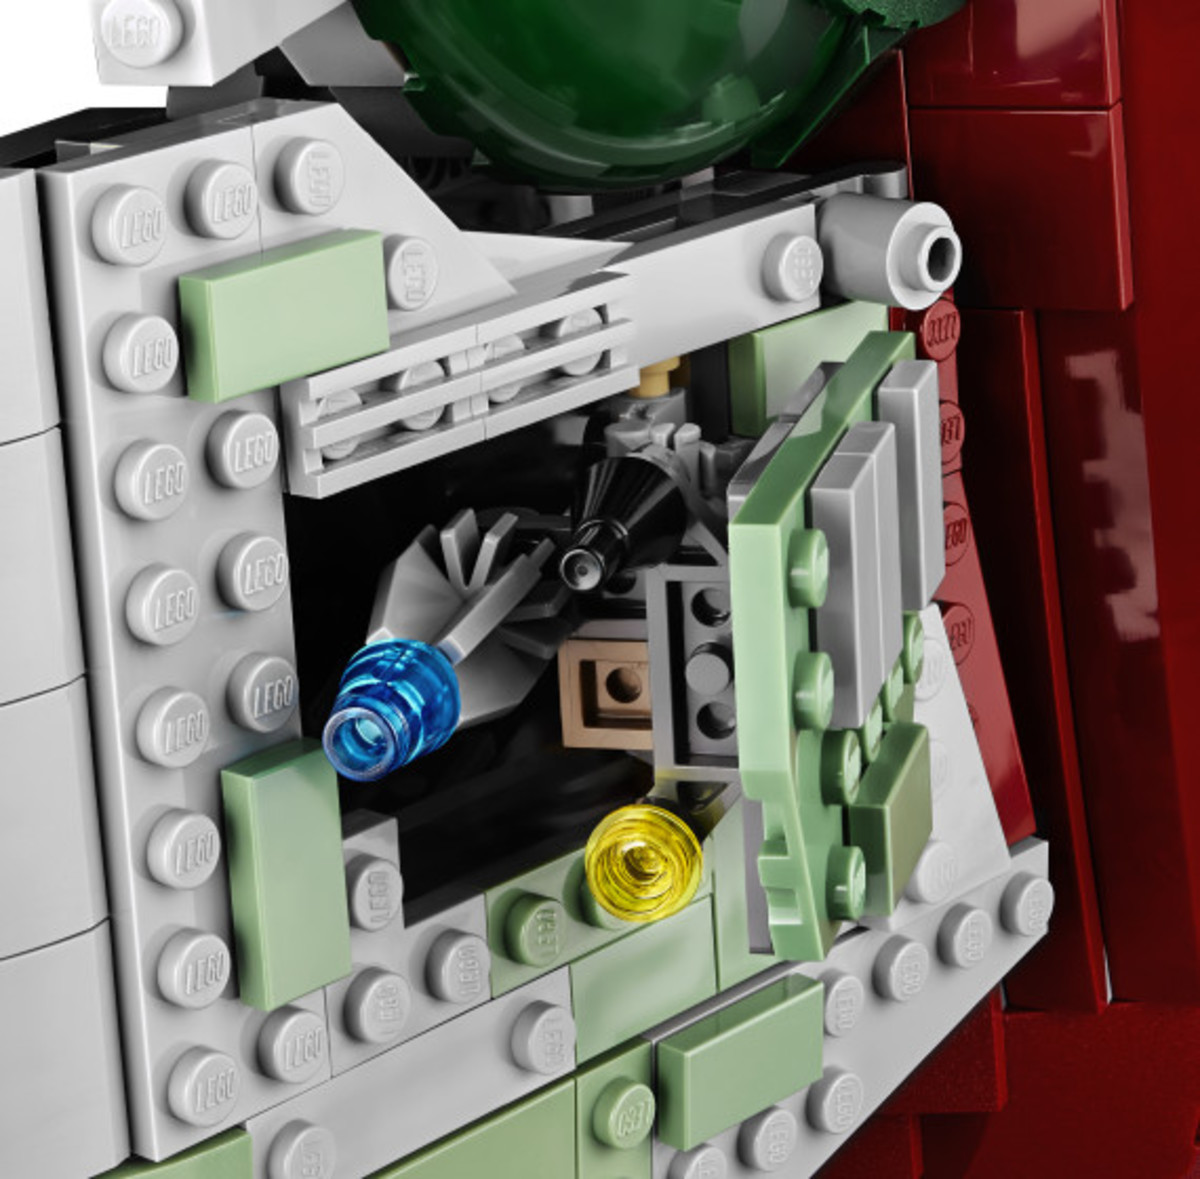 Star Wars x LEGO Ultimate Collector's Series: Boba Fett's Slave I Kit | Release Info - 17